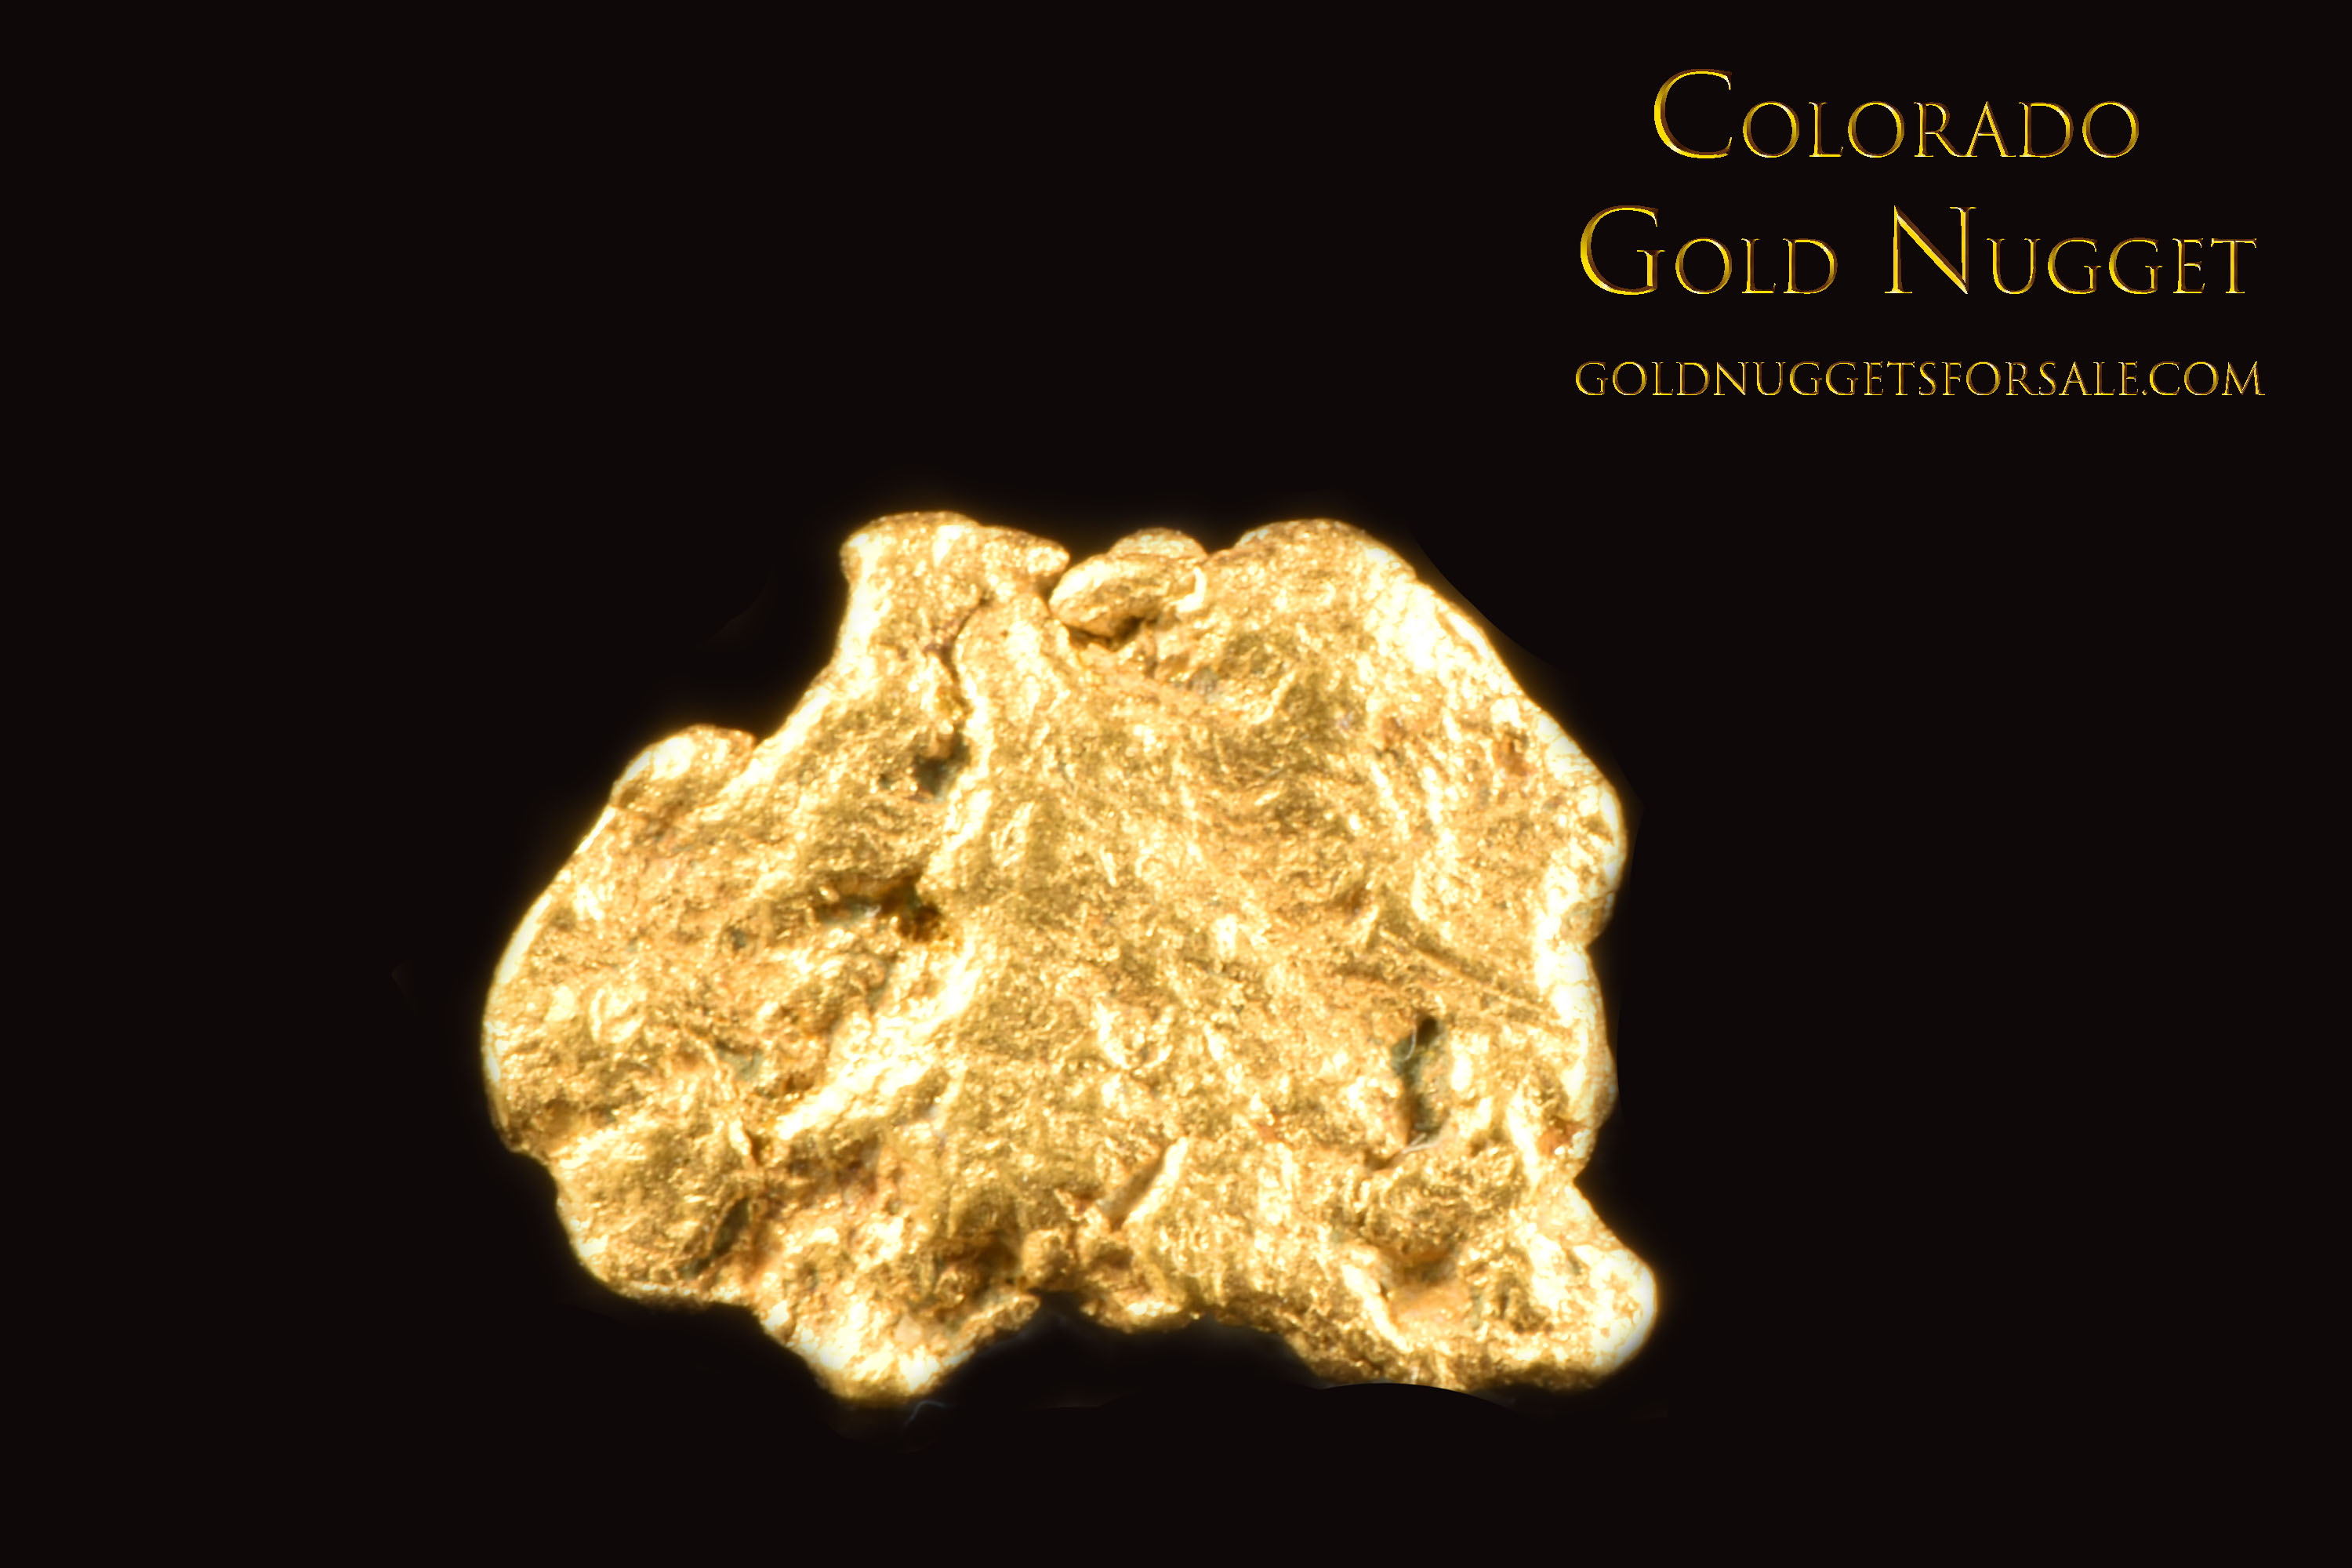 Wonderful Thin Gold Nugget from Colorado